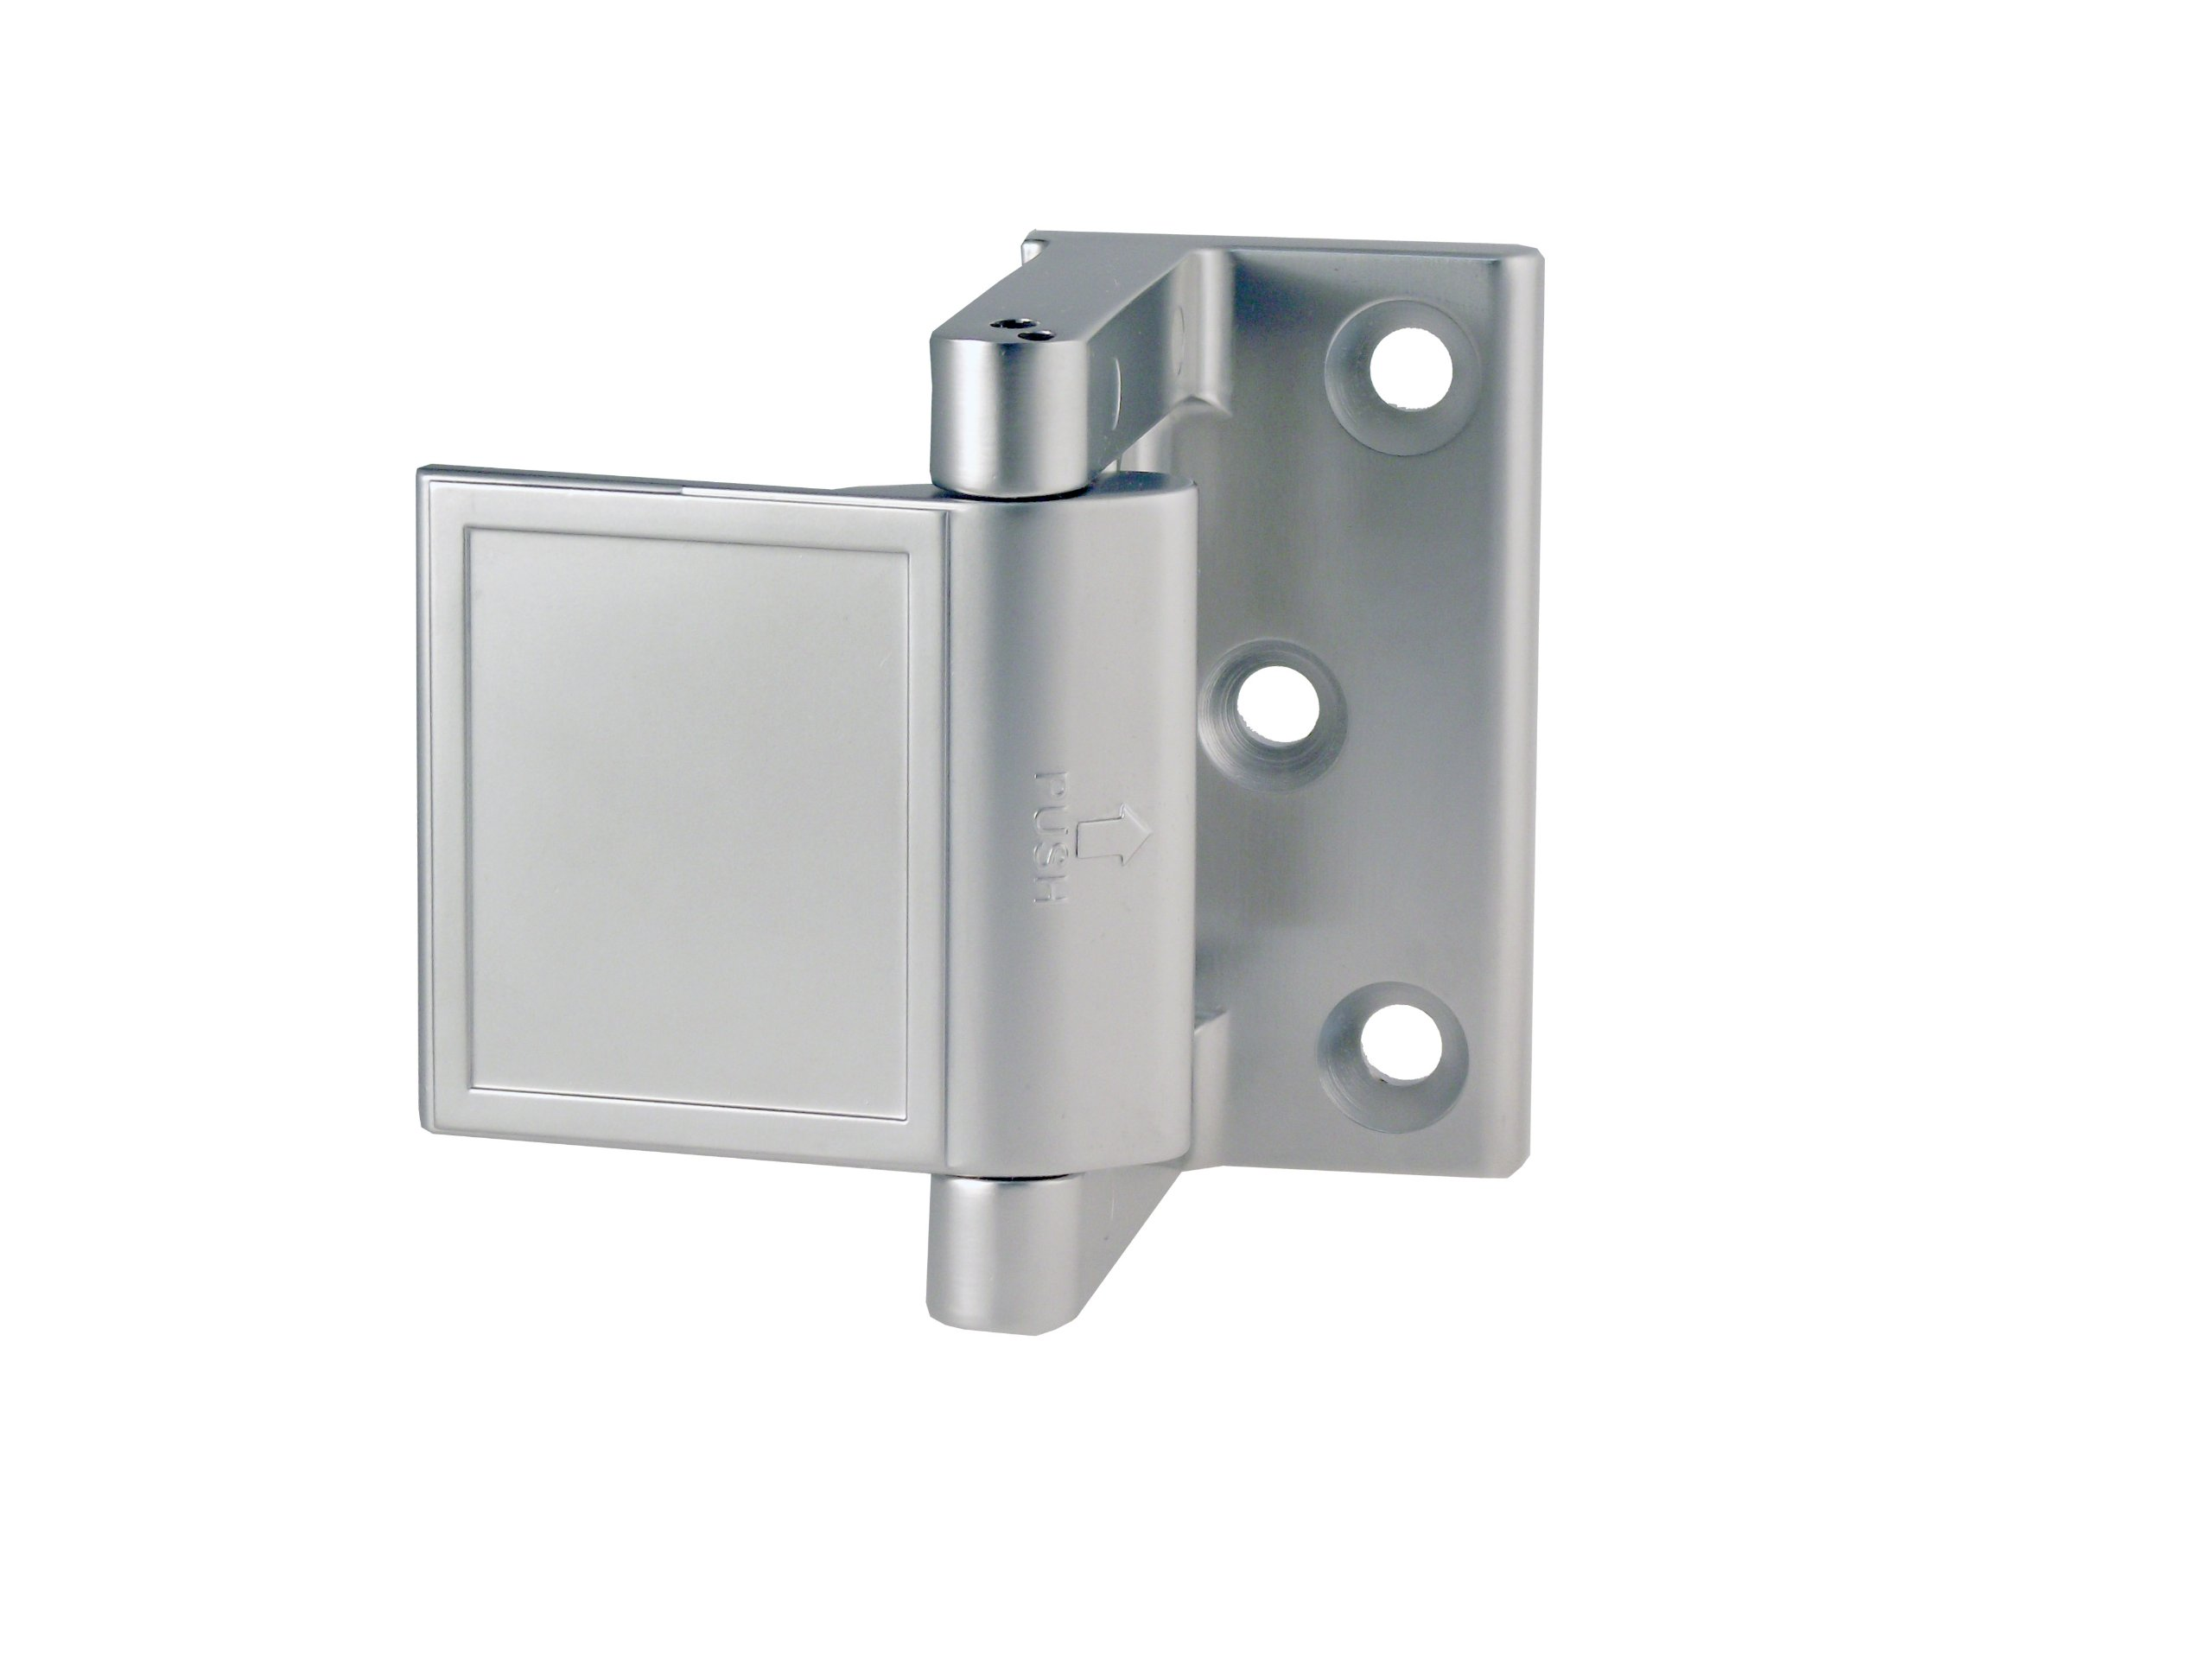 PEMKO PDL26D/15 Privacy Door Latch, Satin Chrome/Satin Nickel finish, 1-1/2'' x 2-3/4'' Width, 2-3/16'' Height